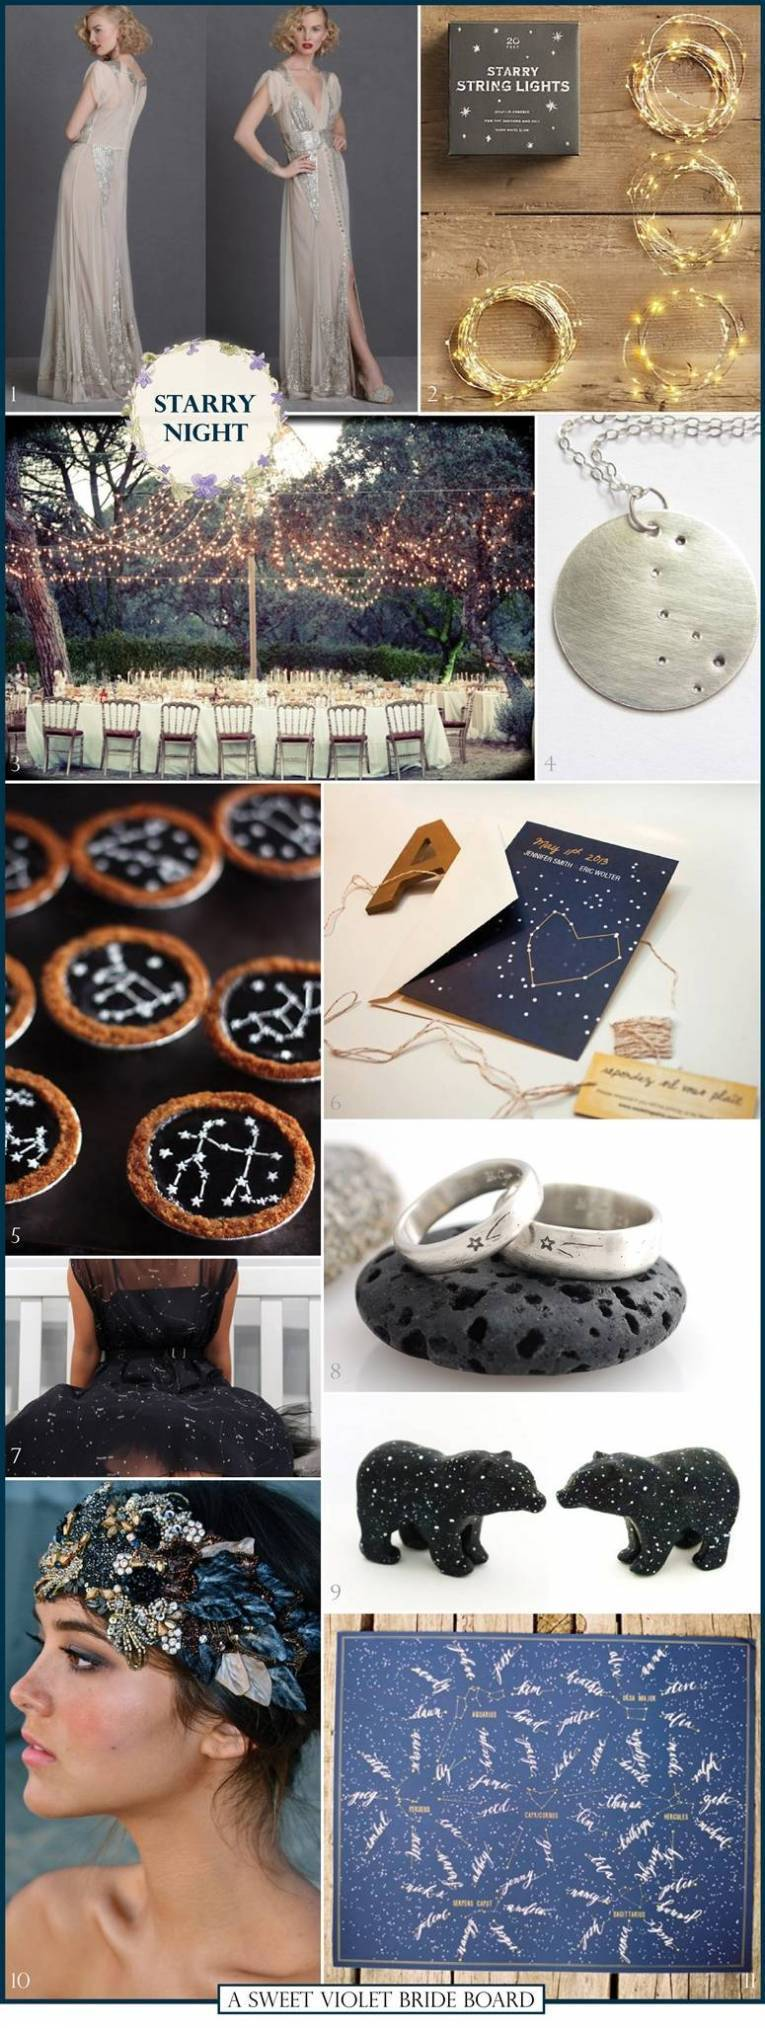 Wedding Inspiration Board #3: Starry Night